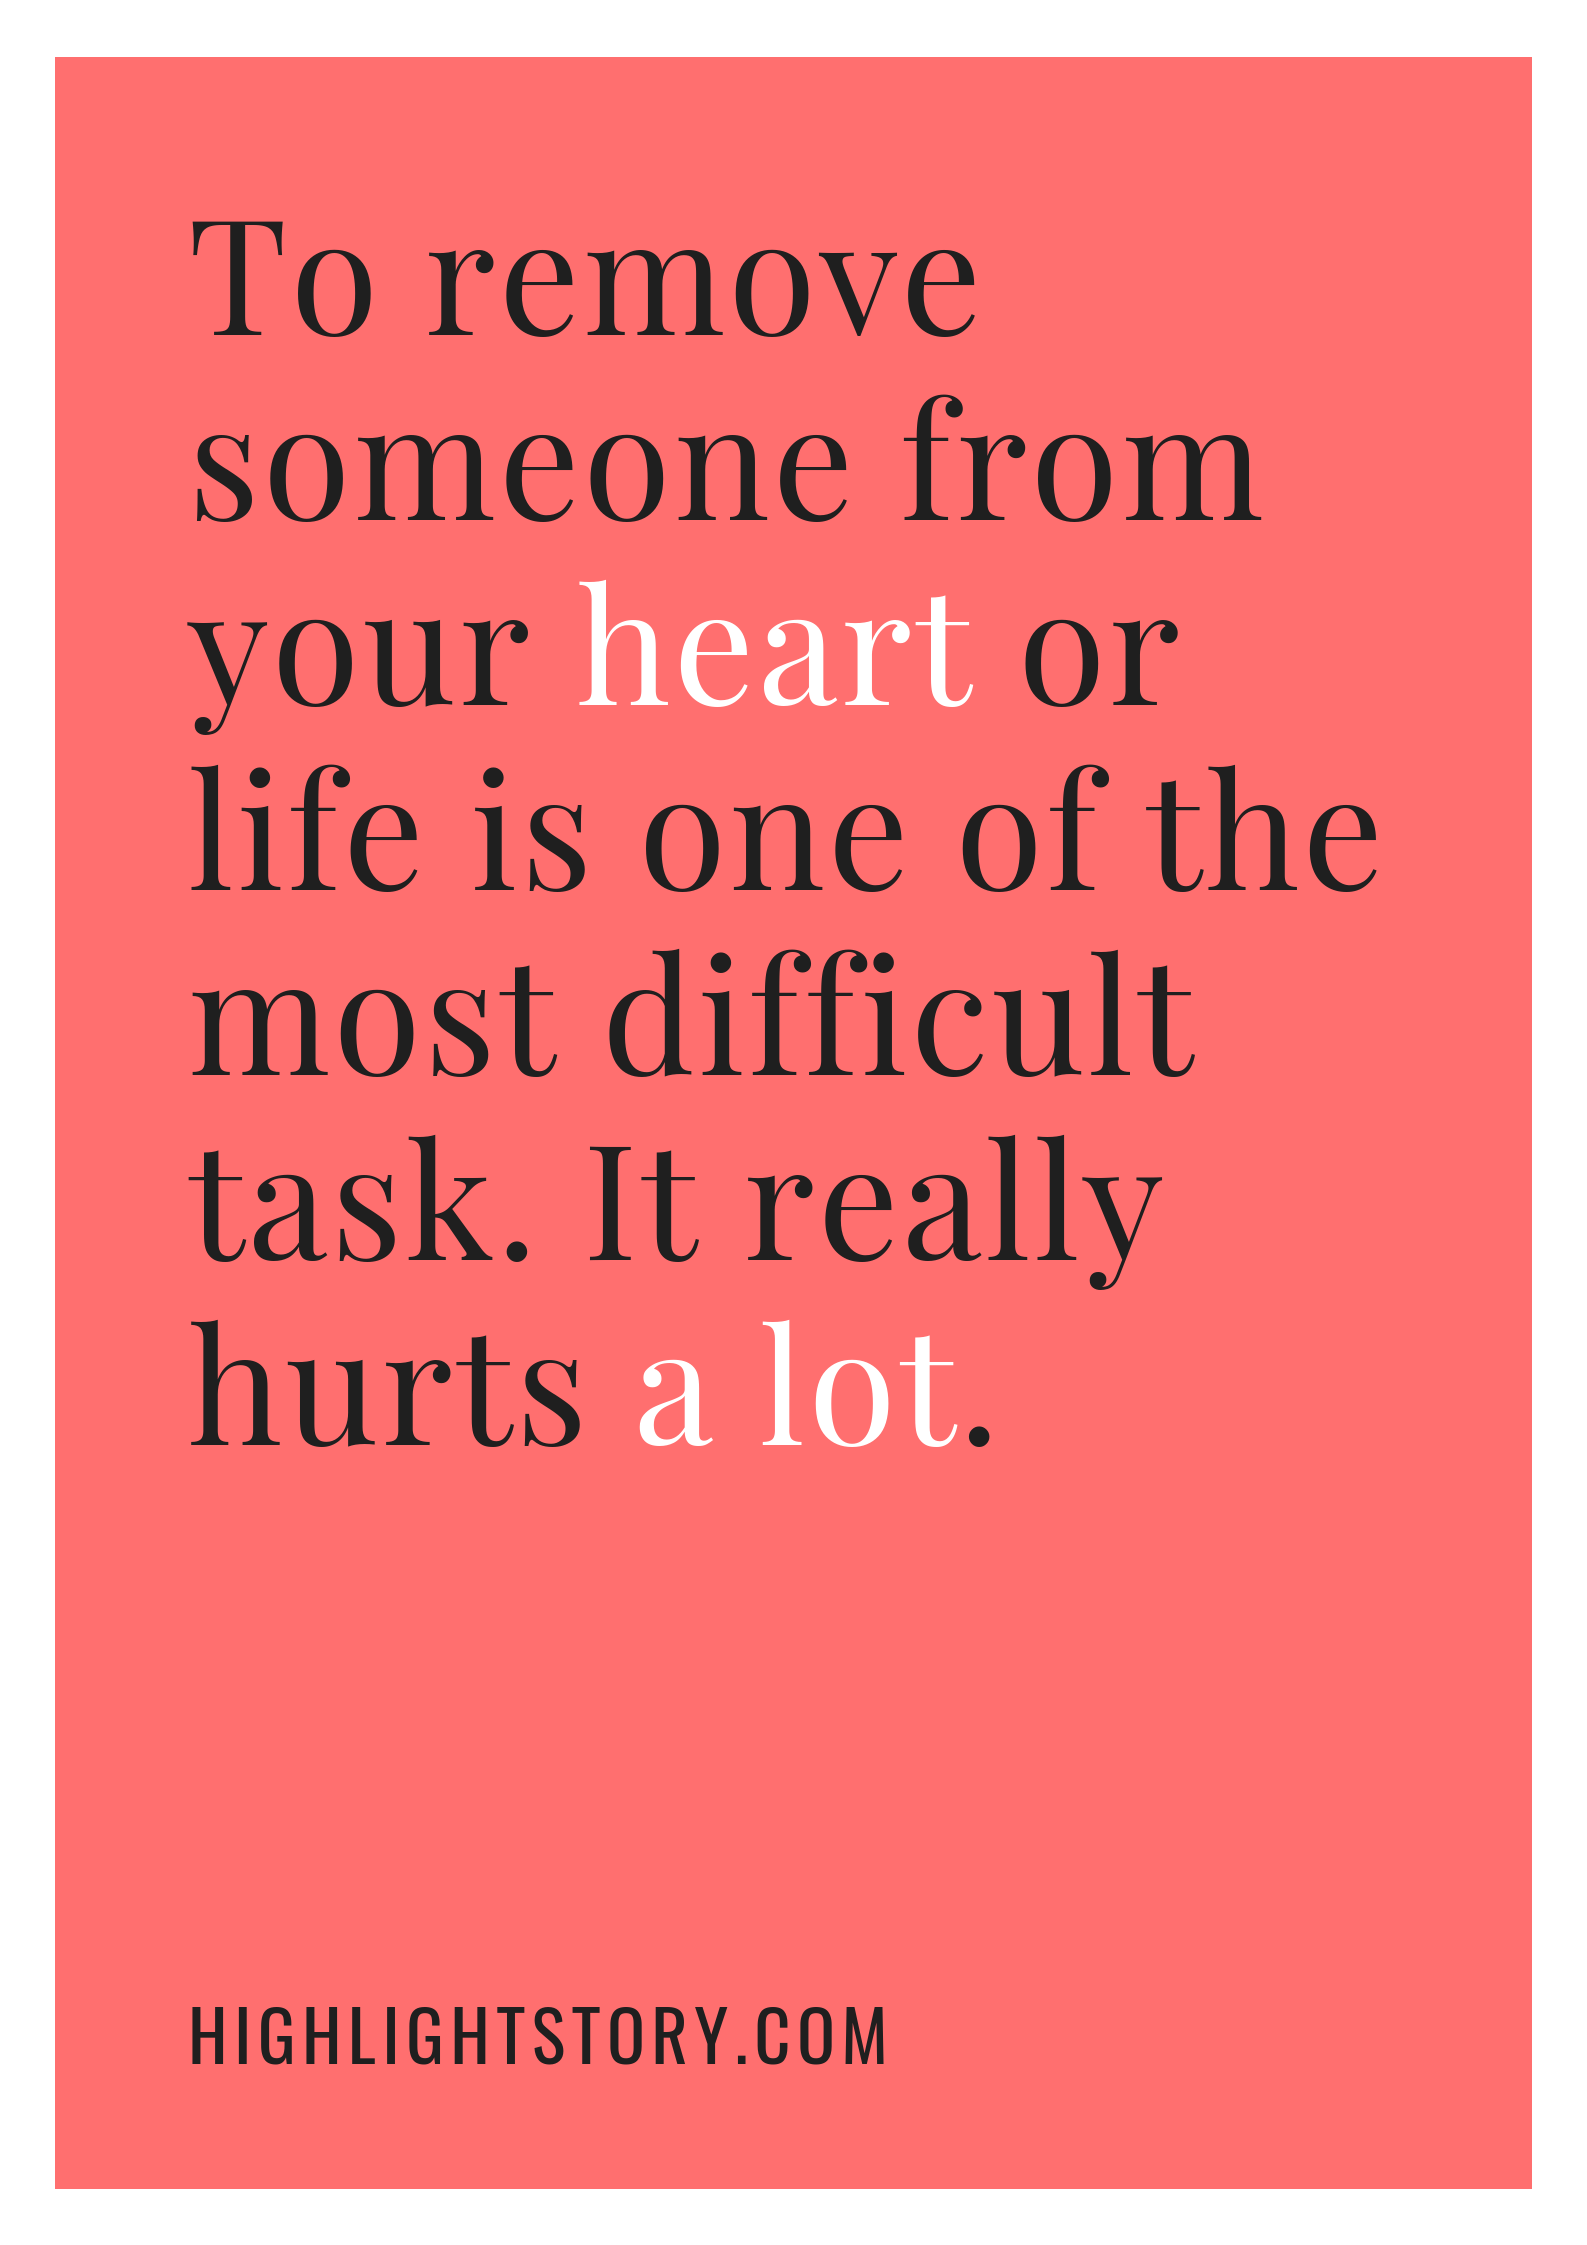 To remove someone from your heart or life is one of the most difficult task. It really hurts a lot.